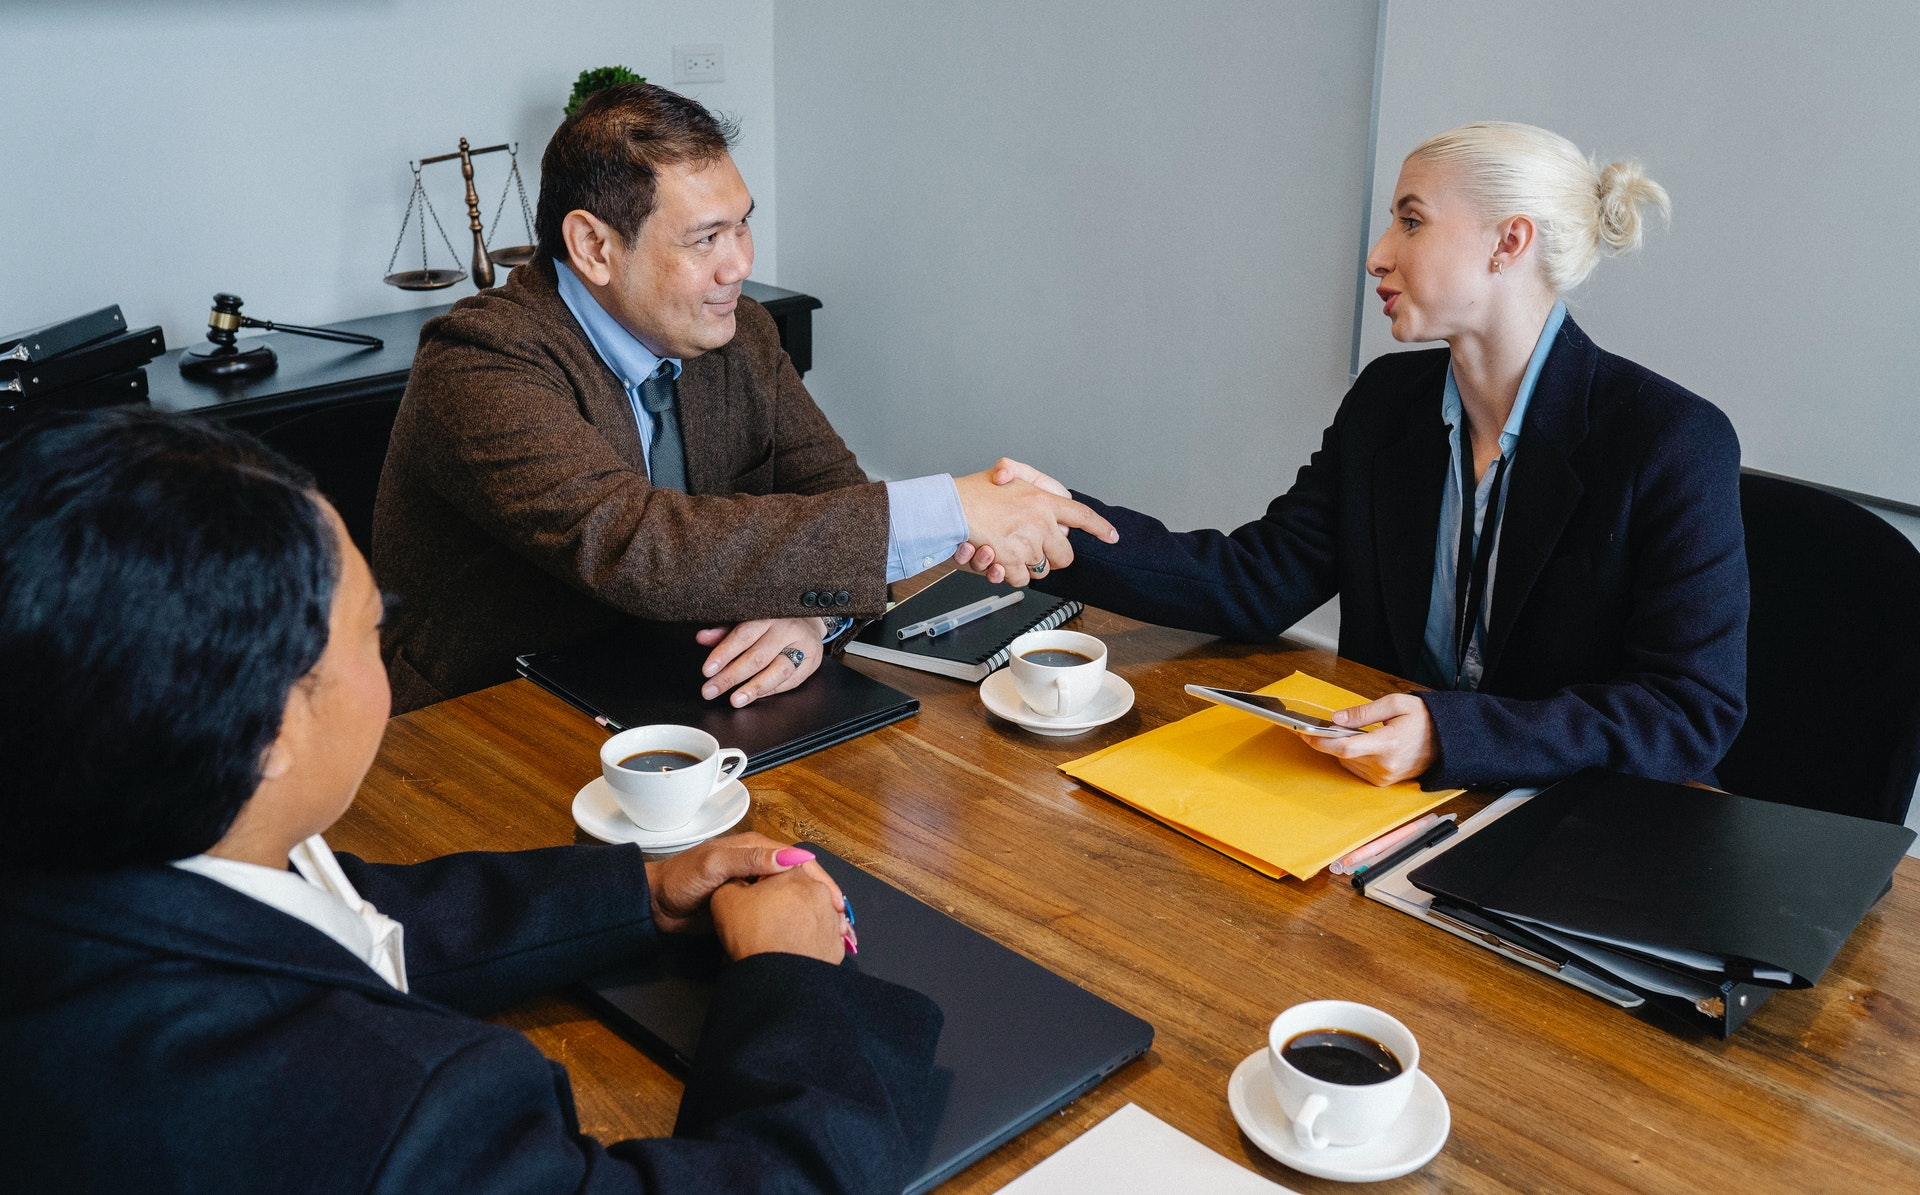 Business people shaking hands and completing a deal